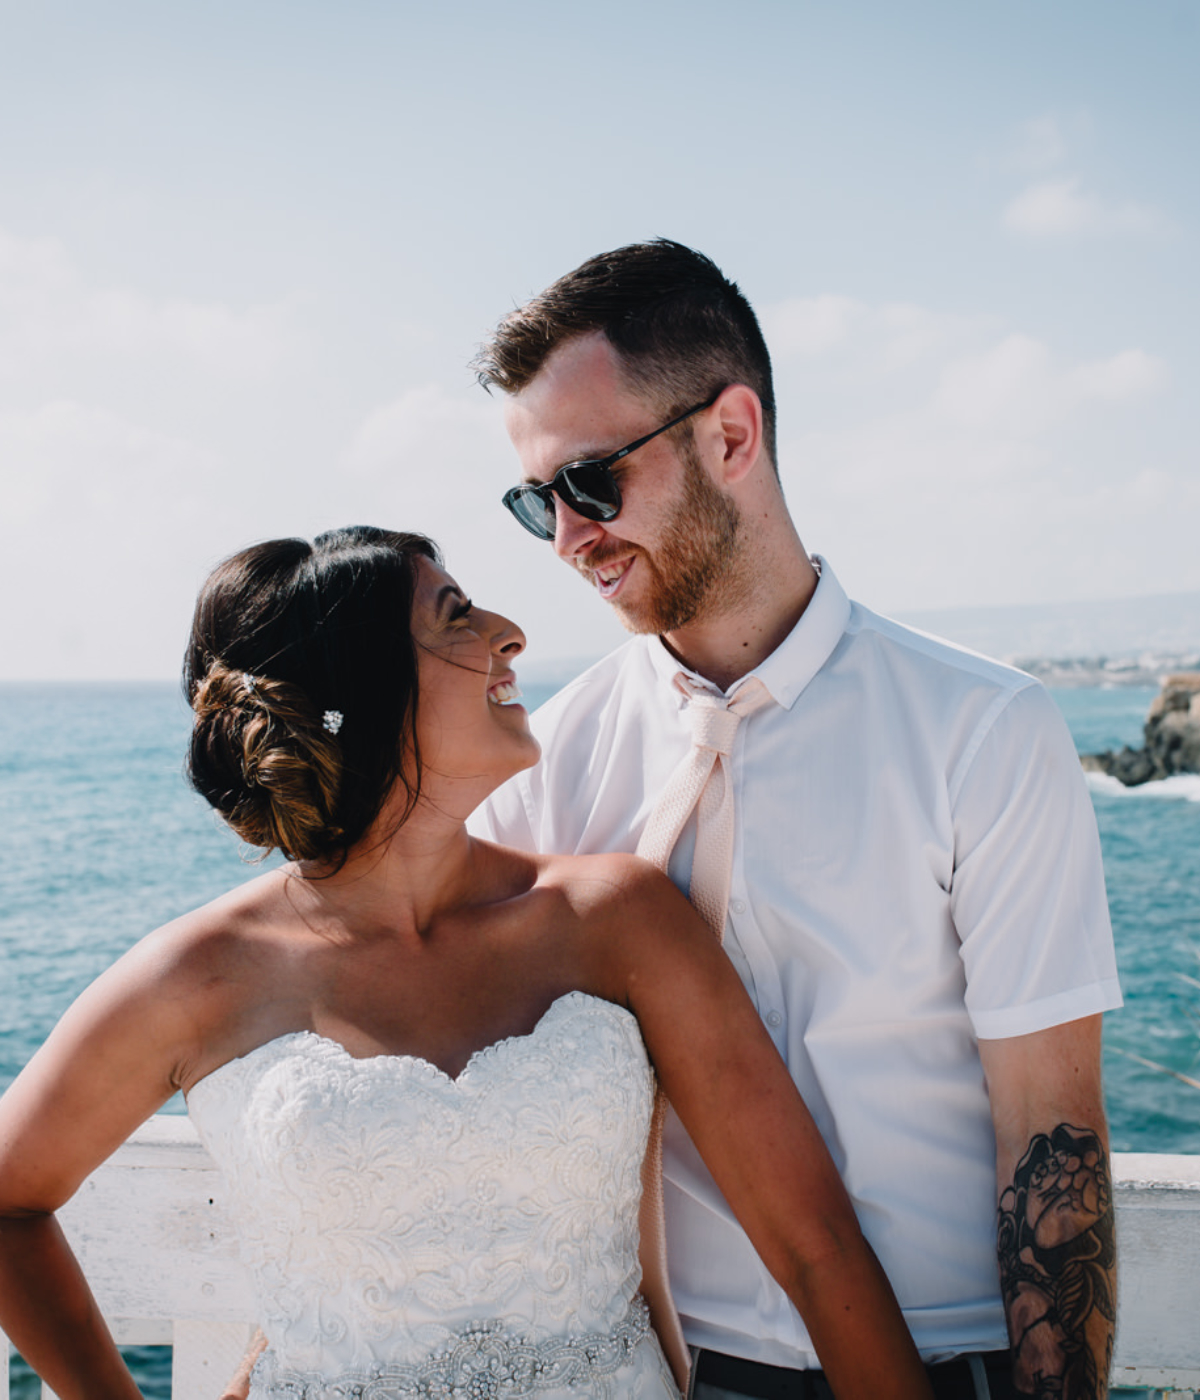 cyprus-paphos-wedding-leonardo-laura-macdonald-100